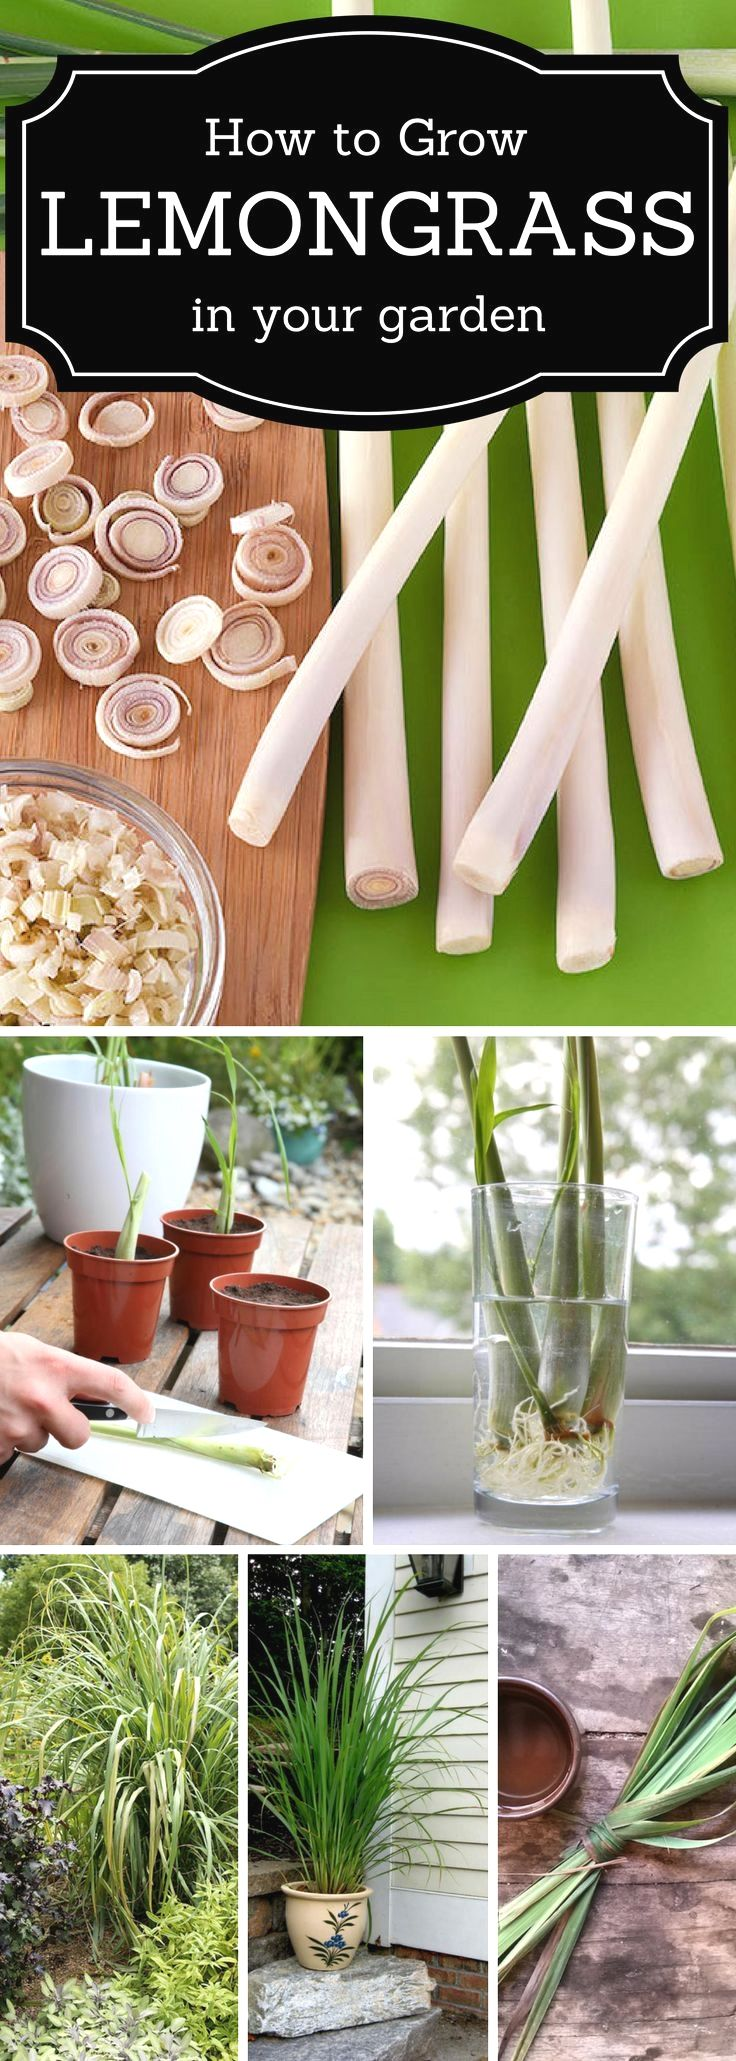 If you like Asian cuisine - Thai, Vietnamese, Chinese or Indian - you are already familiar with the aromatic herb, lemongrass. It has been used in cooking for centuries in South and Southeast Asian…MoreMore #LandscapingTips&Tricks